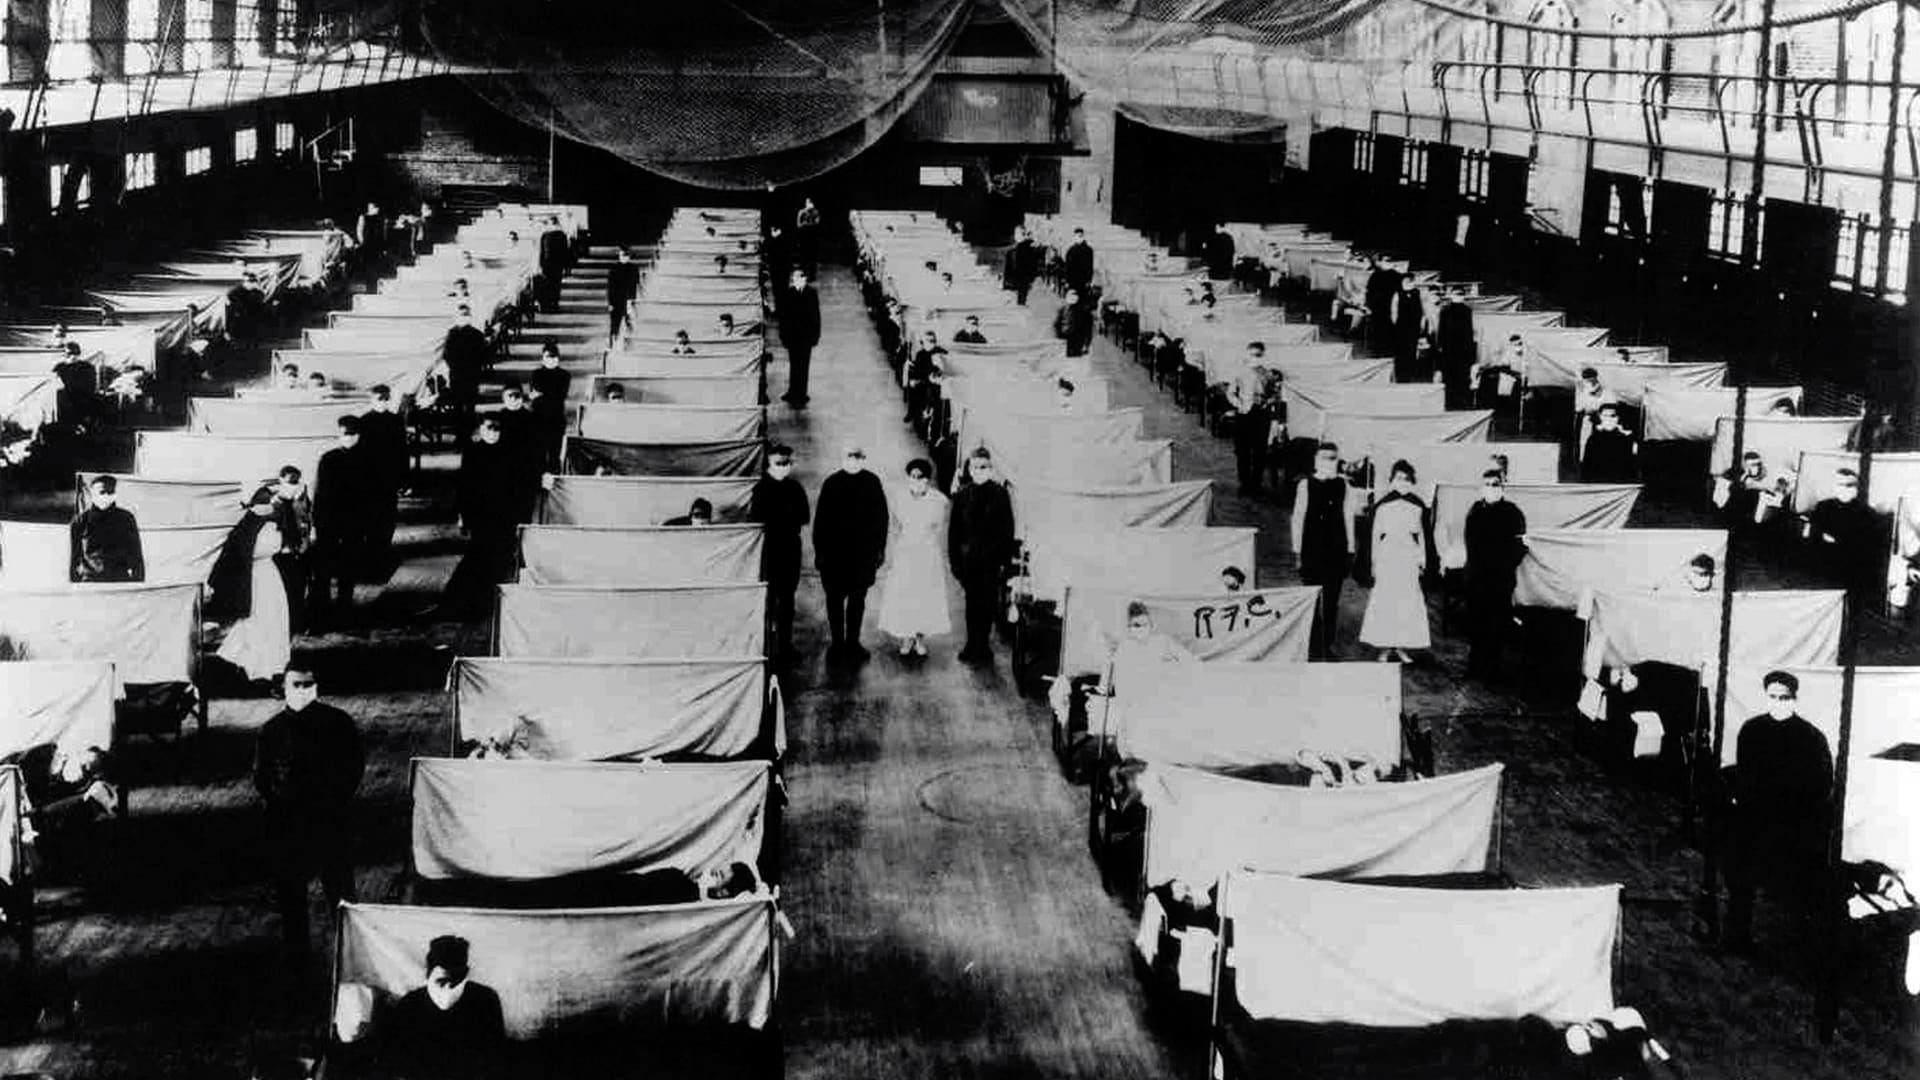 Spanish Flu in 1918